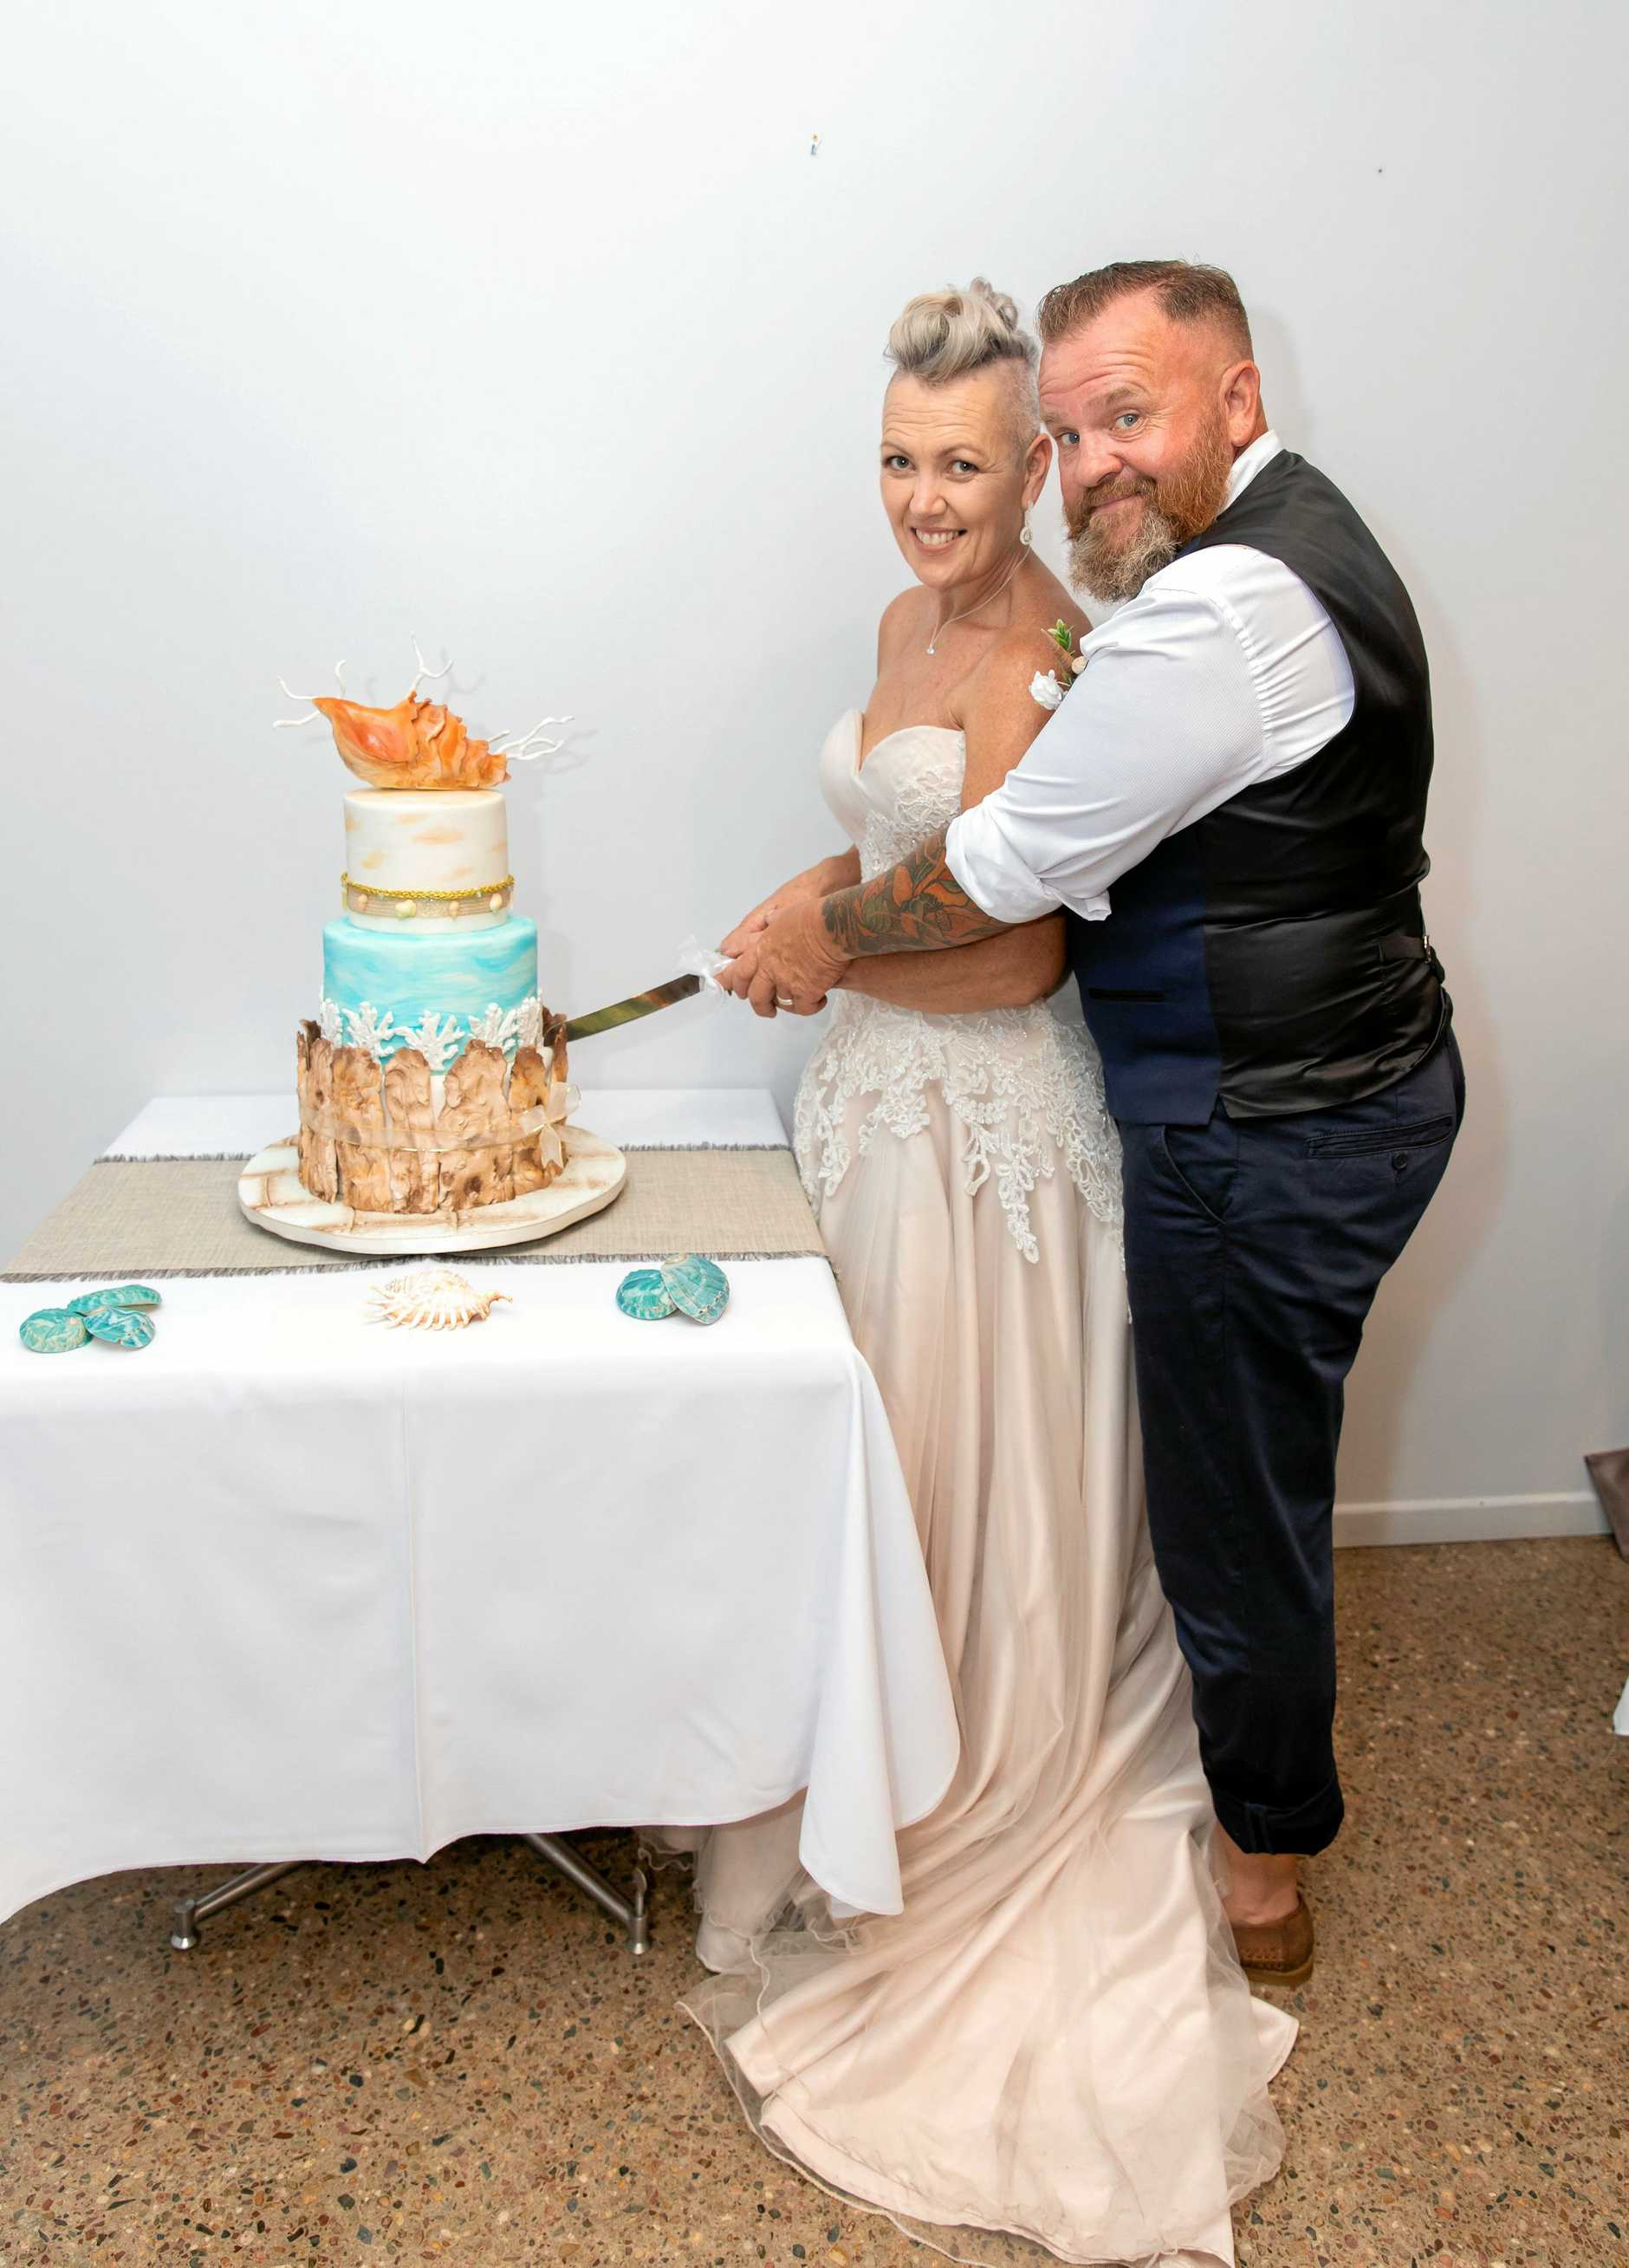 Sonya and her husband Craig Partridge with their wedding cake.